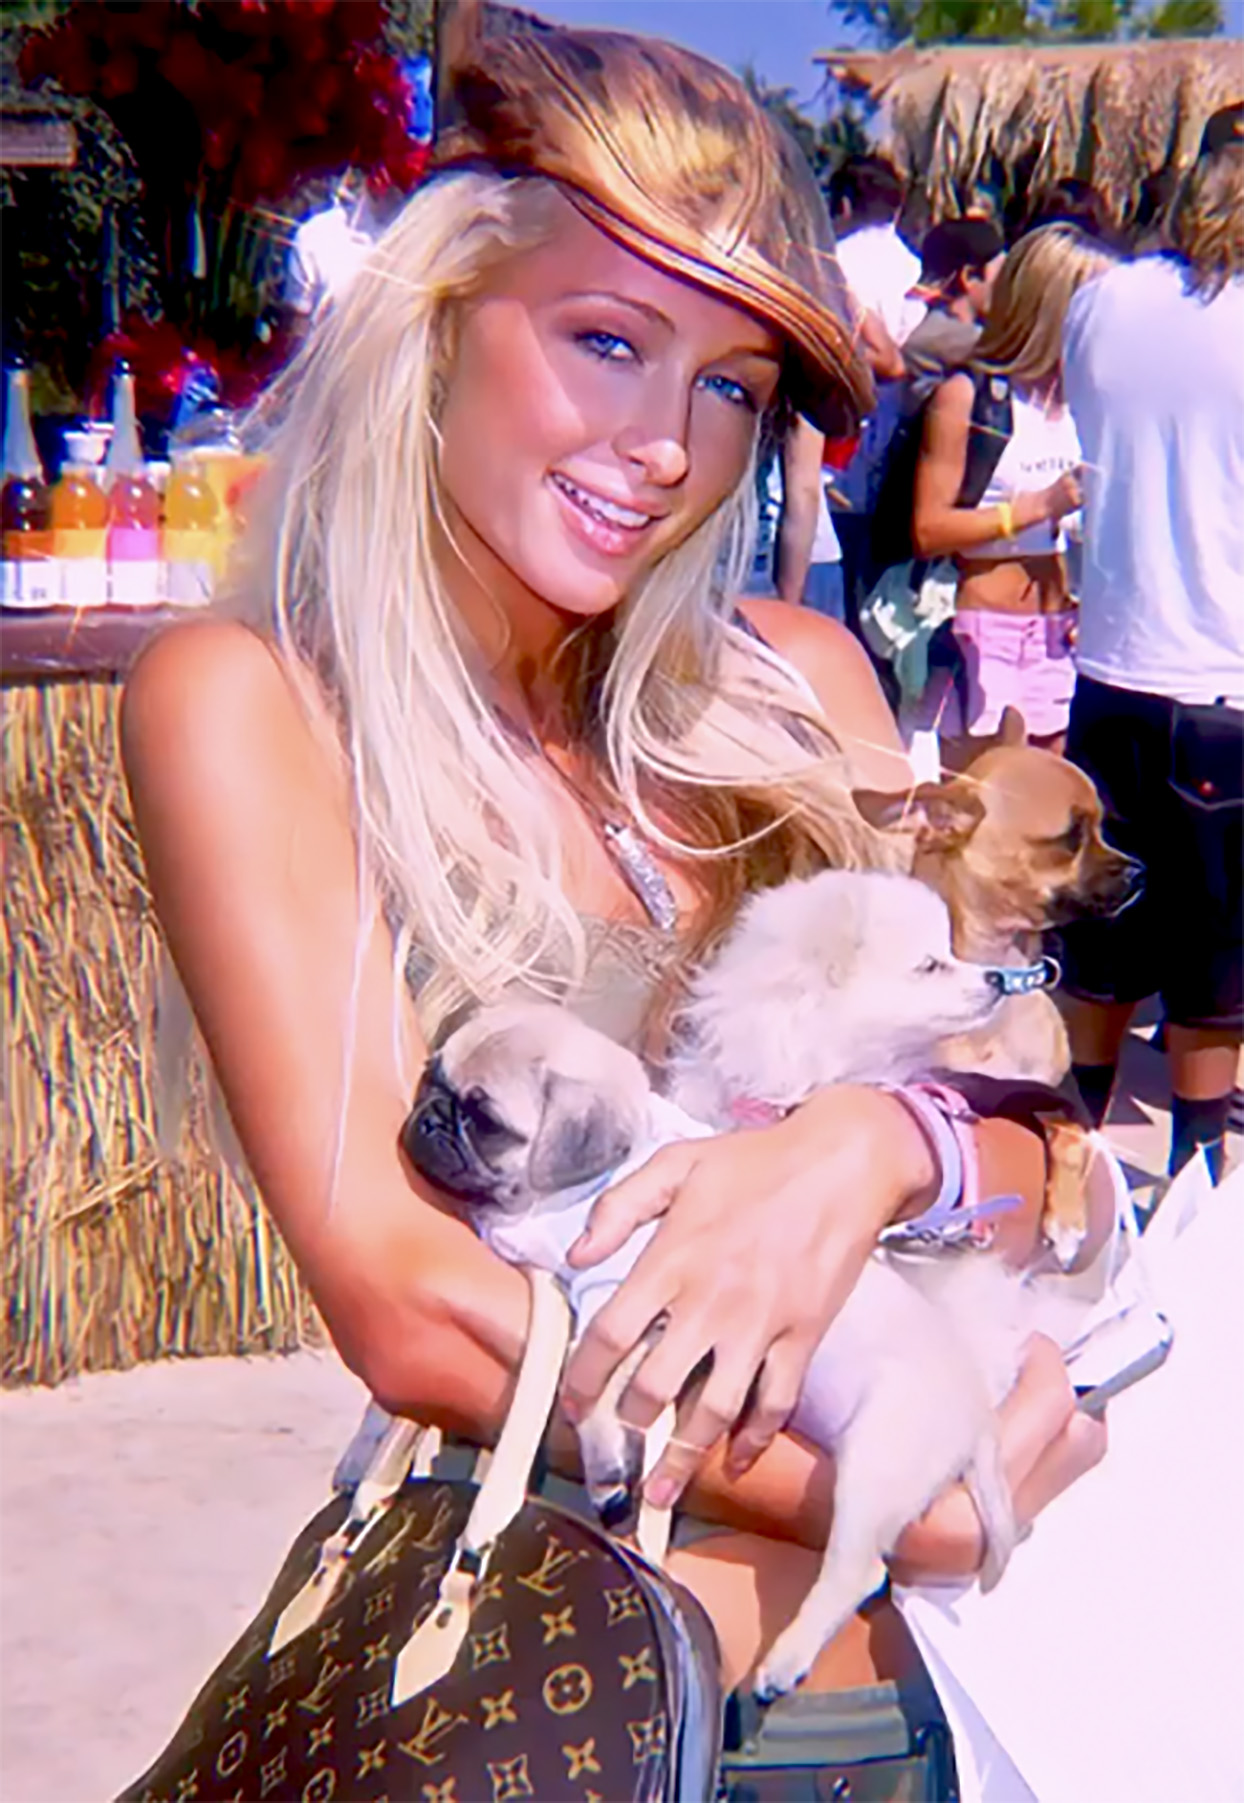 Photo of celebrity Paris Hilton holding three small dogs in her arms